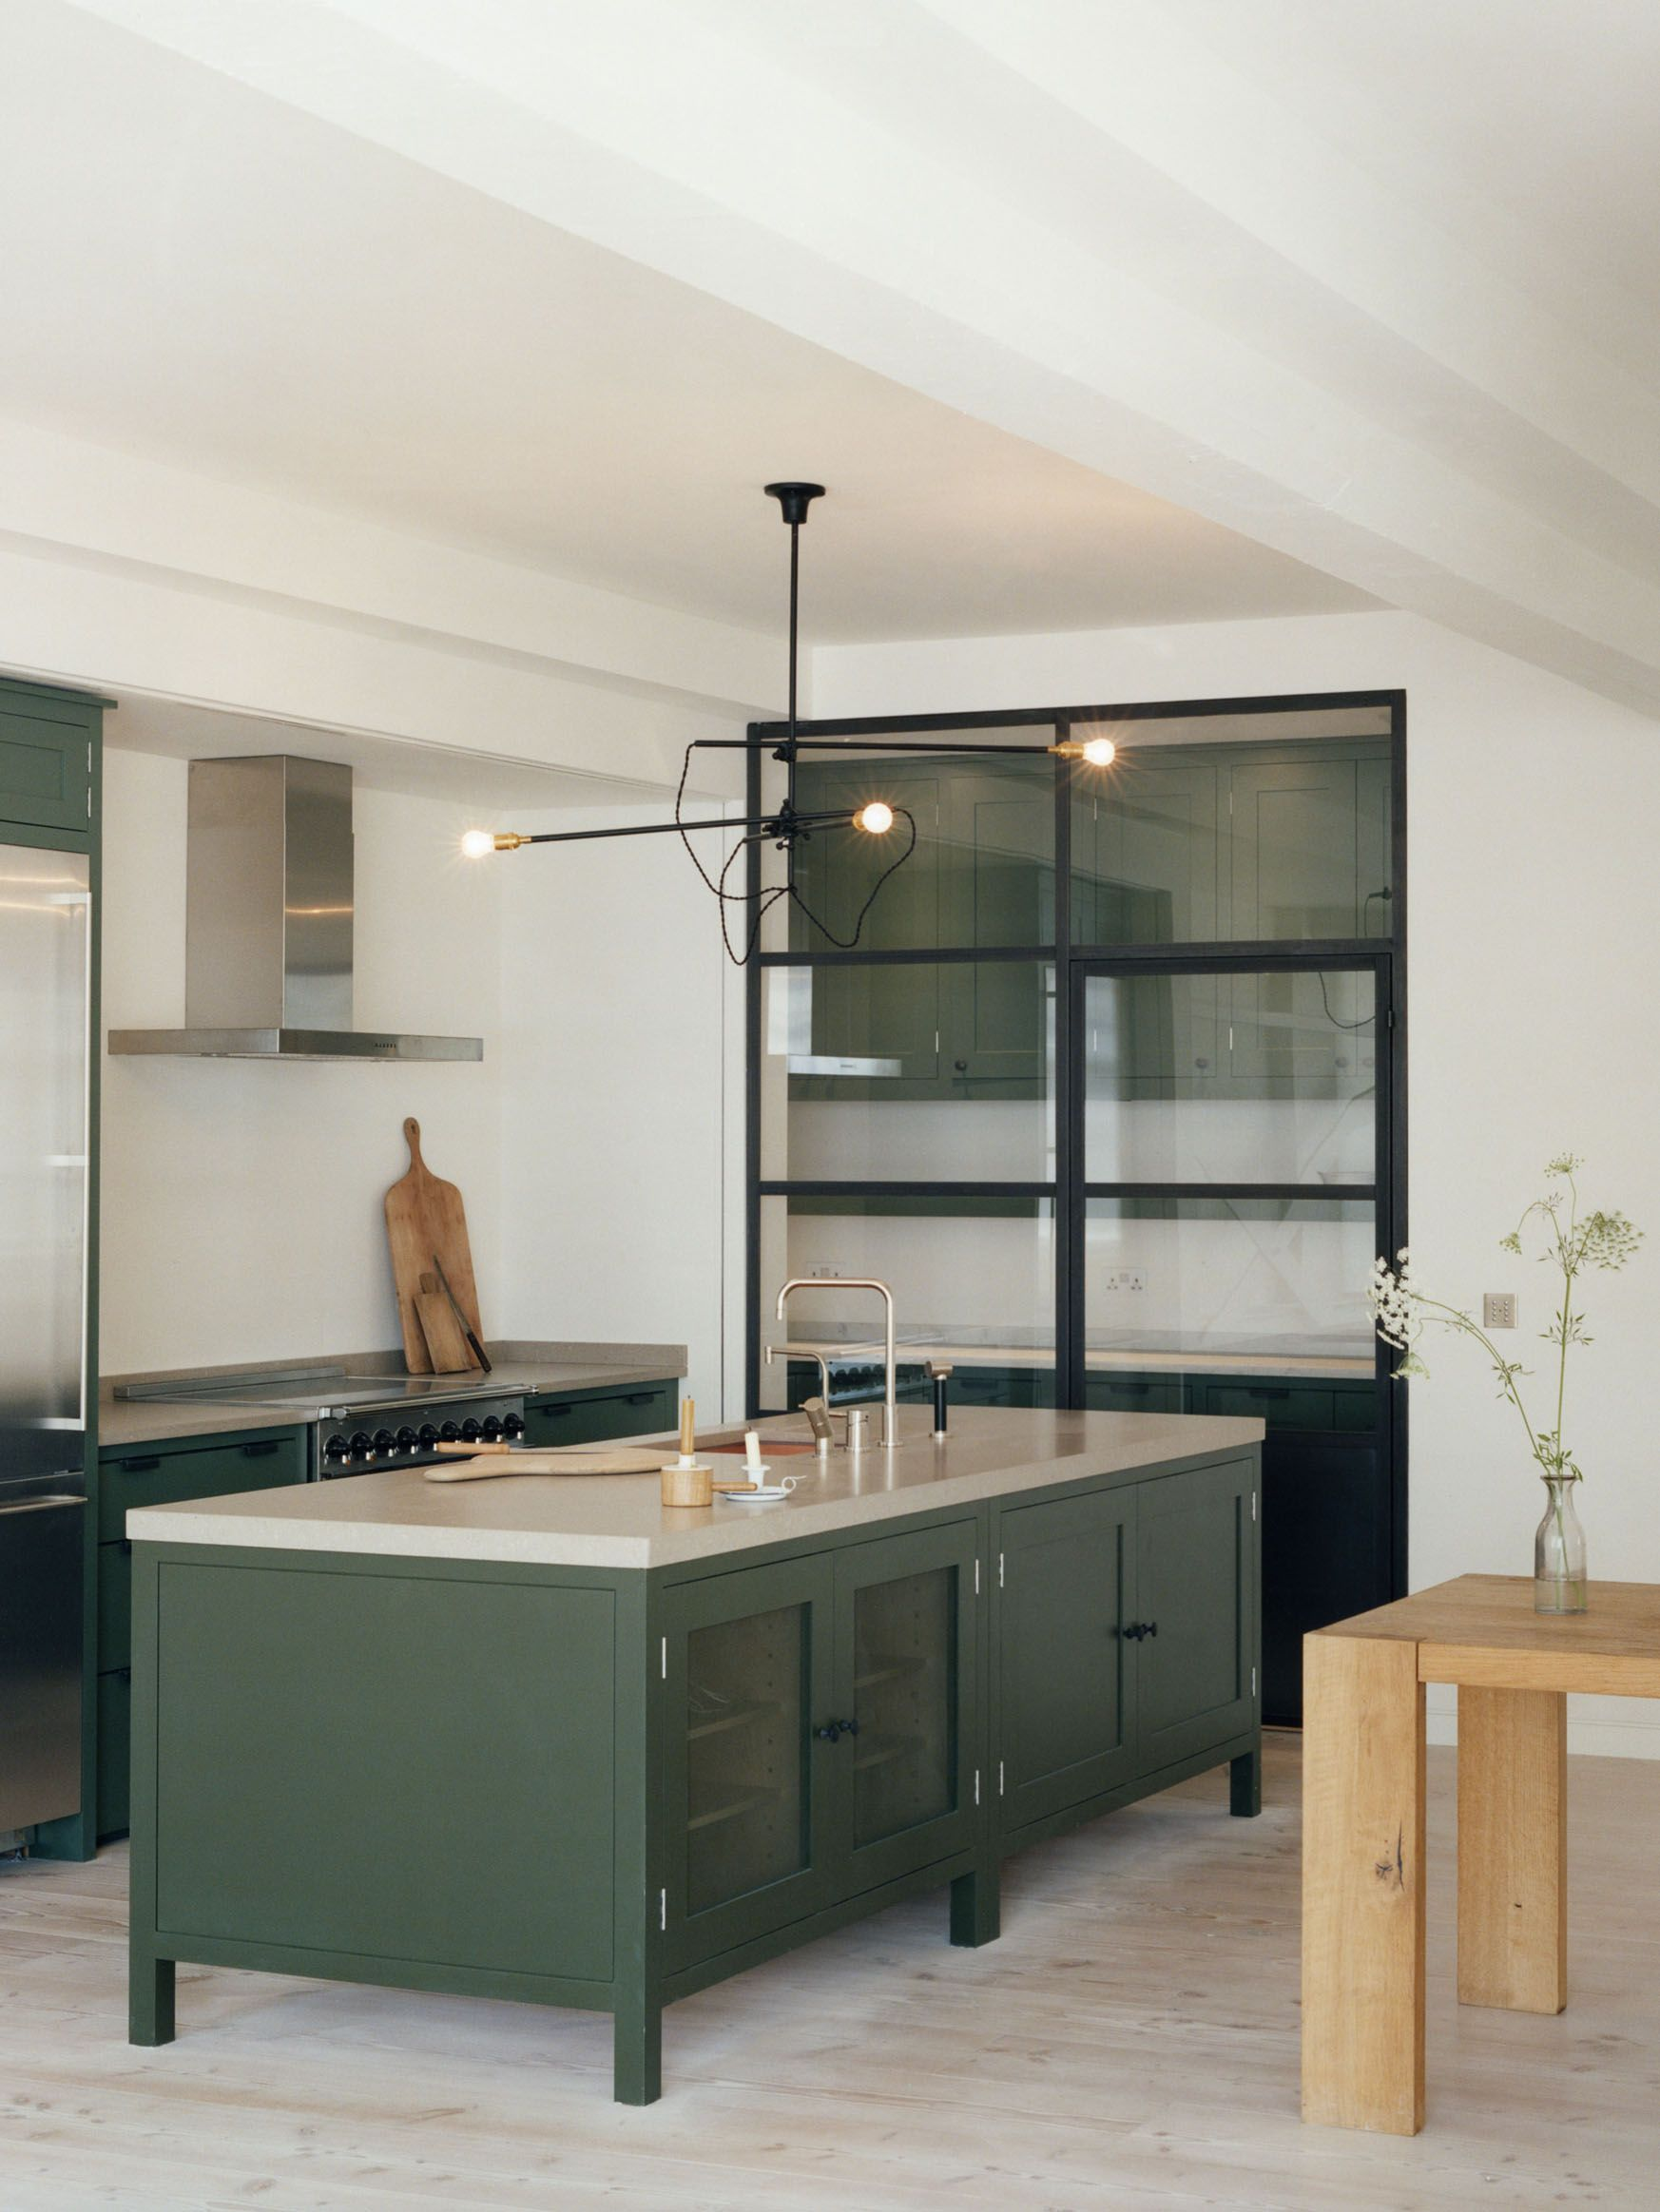 Kitchen Island Green green cabinet kitchens | lexi westergard design blog | in the